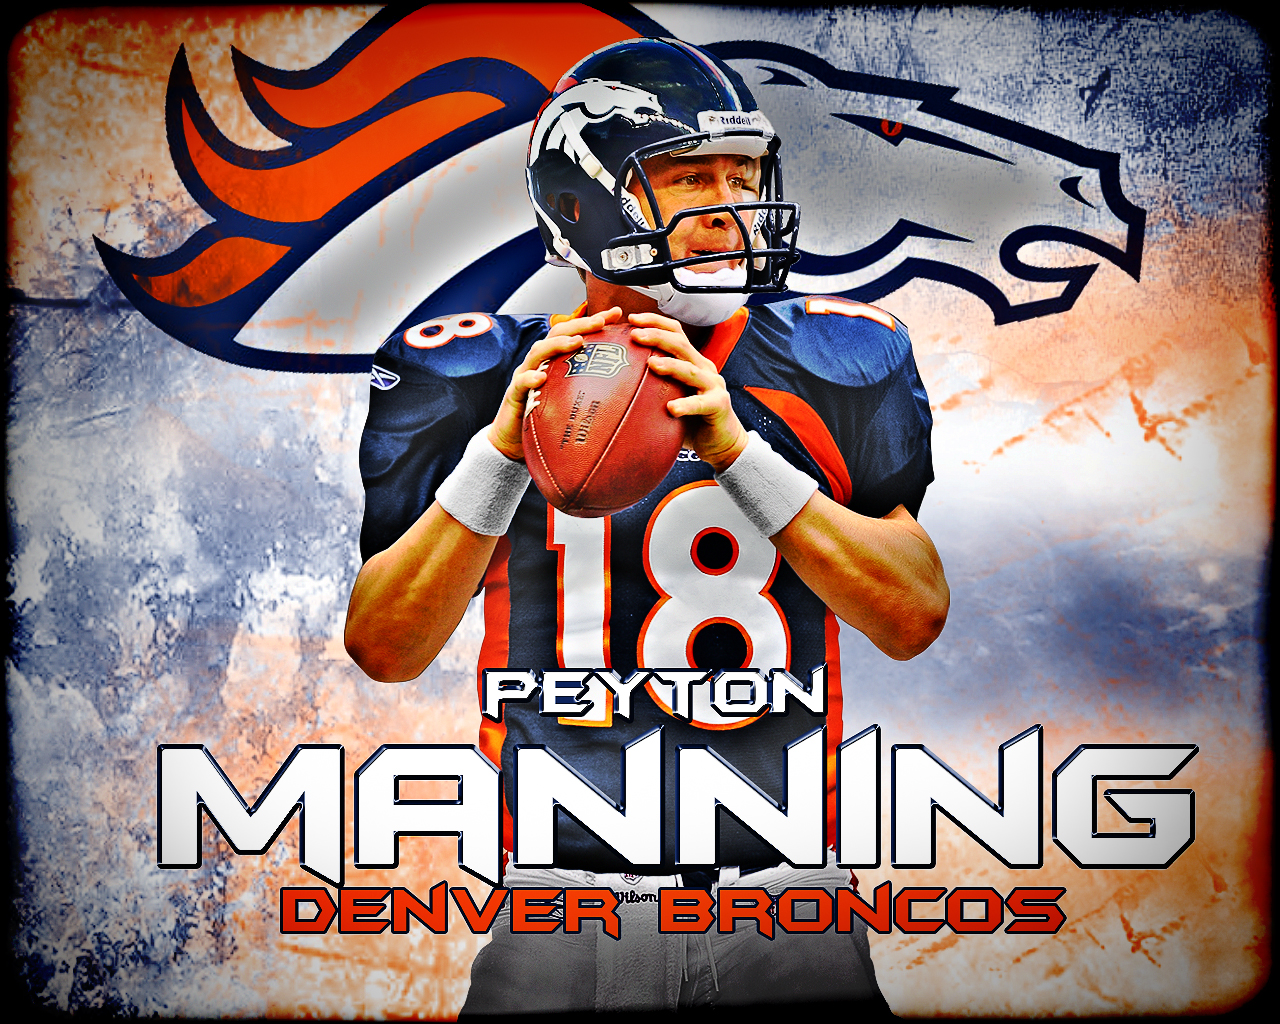 Nfl Wallpapers Peyton Manning Denver Broncos